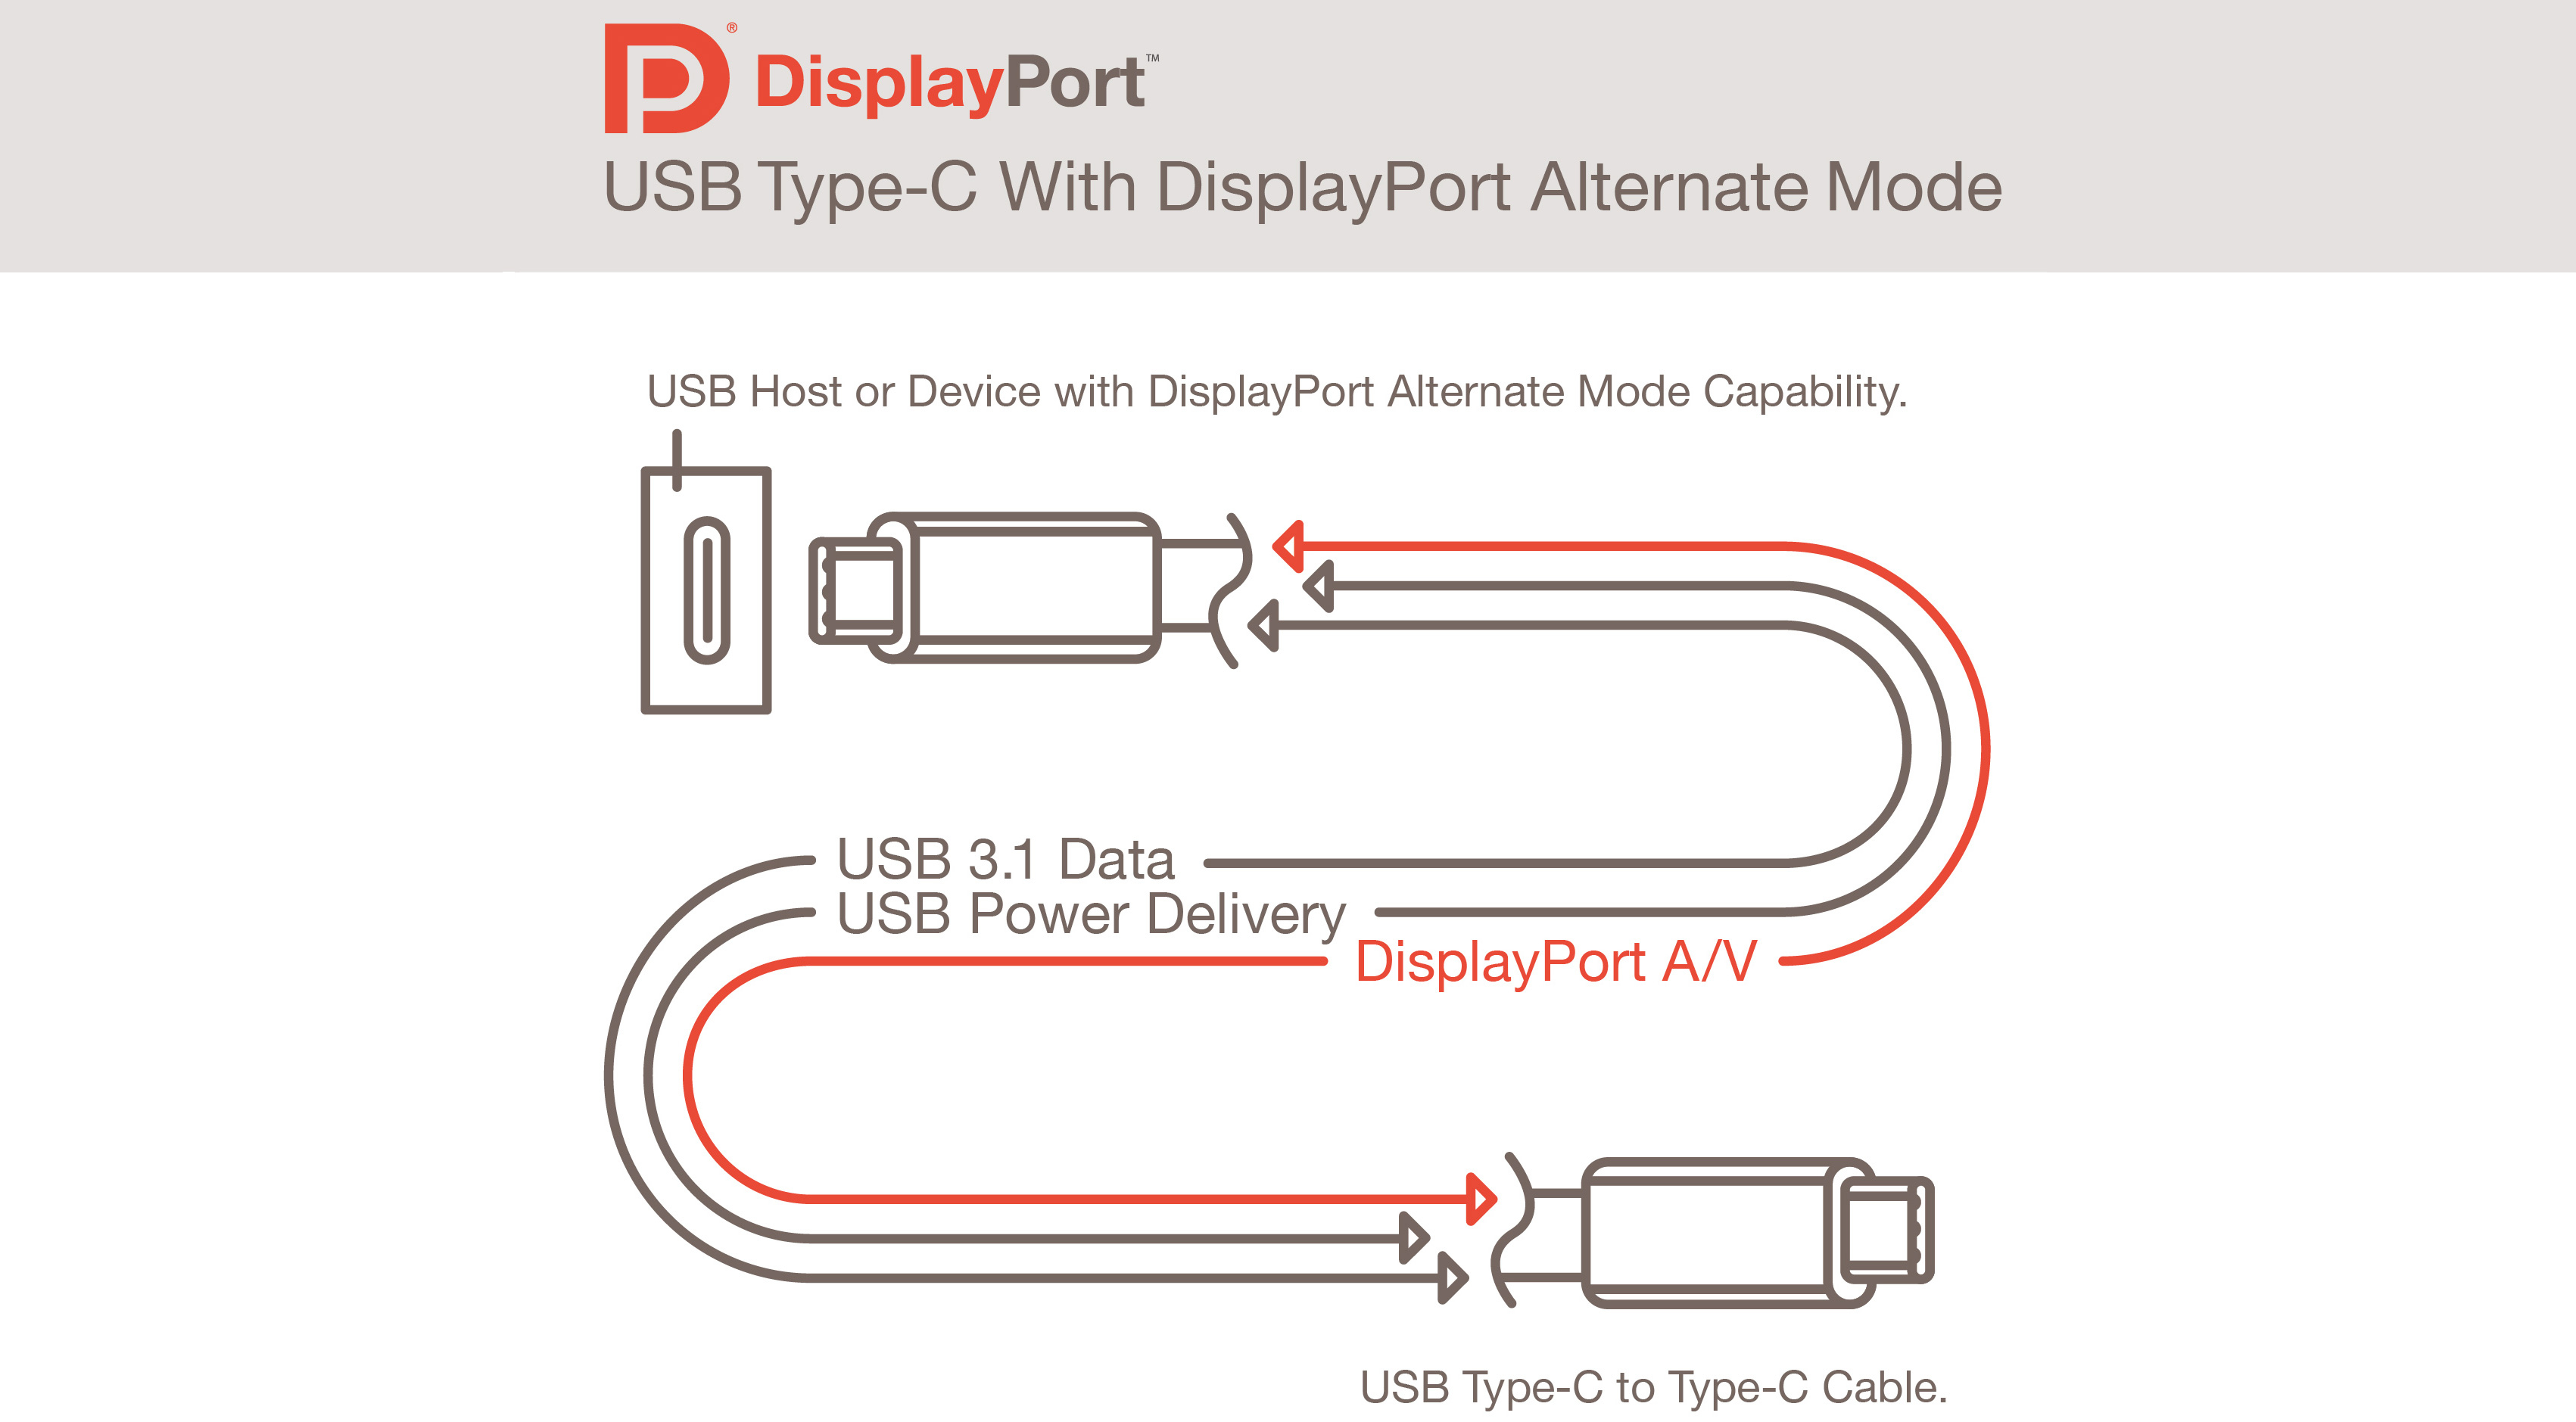 Usb Type C Wiring Diagram | Wiring Diagram - Usb Type C Cable Wiring Diagram